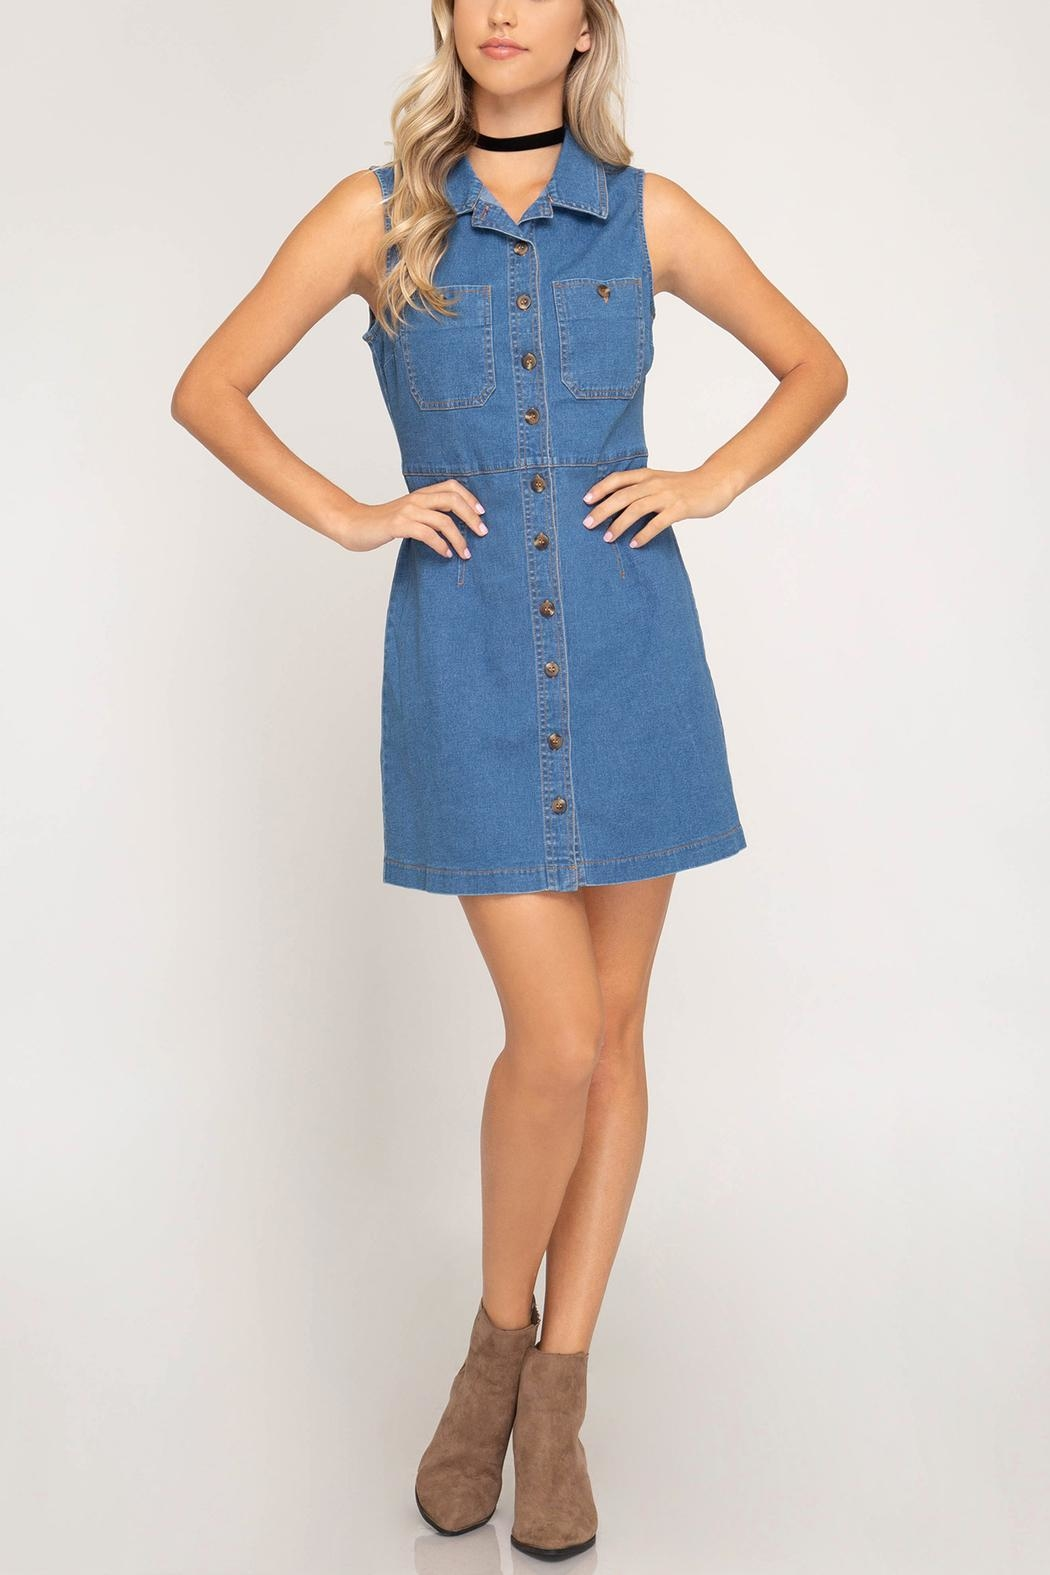 She + Sky Denim Button-Front Dress - Back Cropped Image